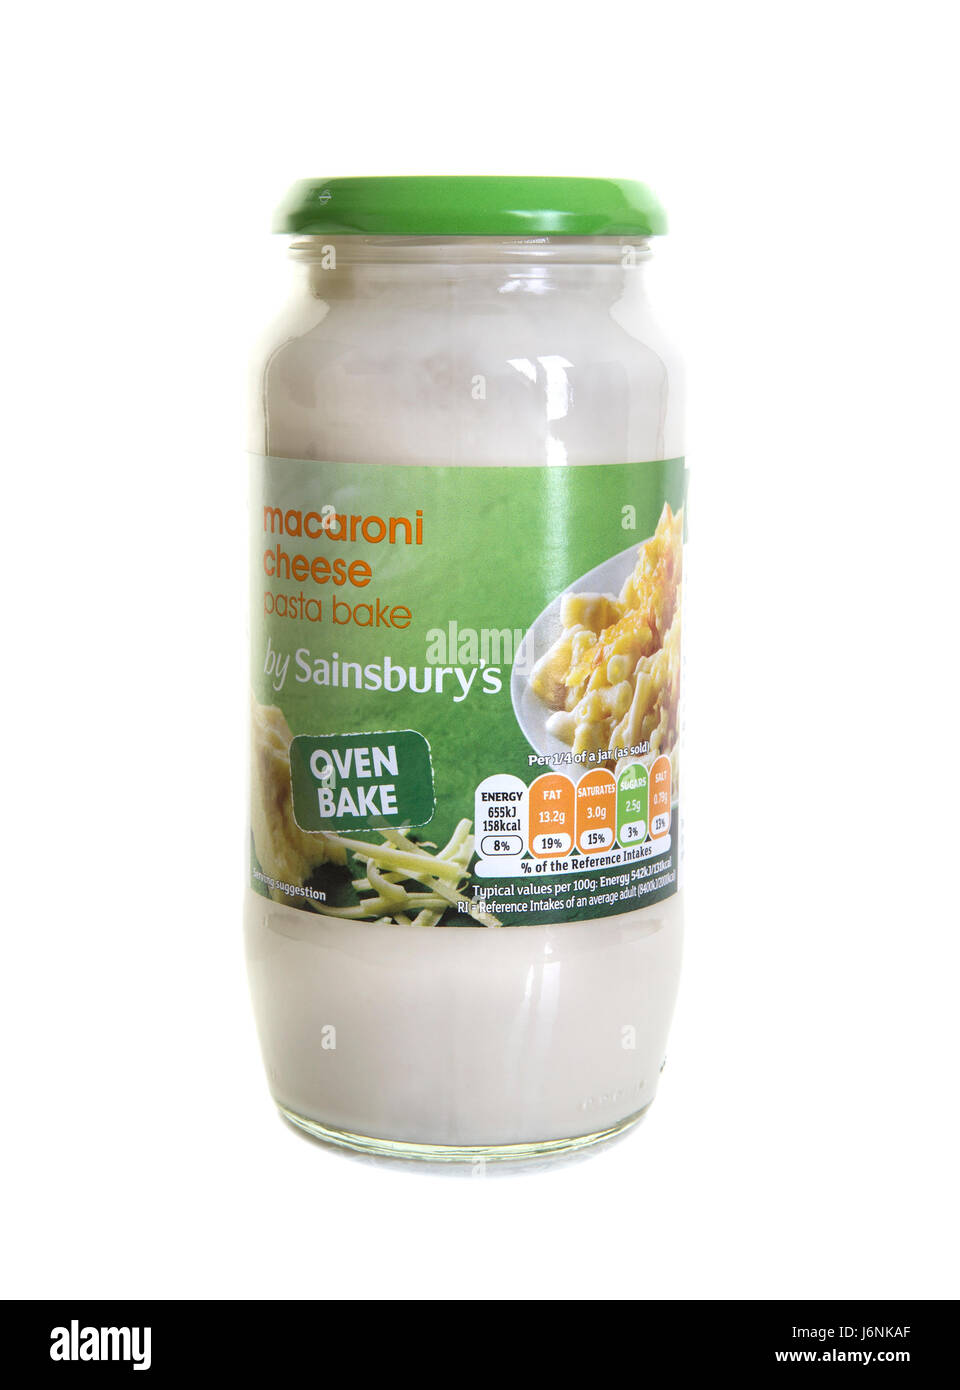 Pasta Sauce Jar High Resolution Stock Photography And Images Alamy